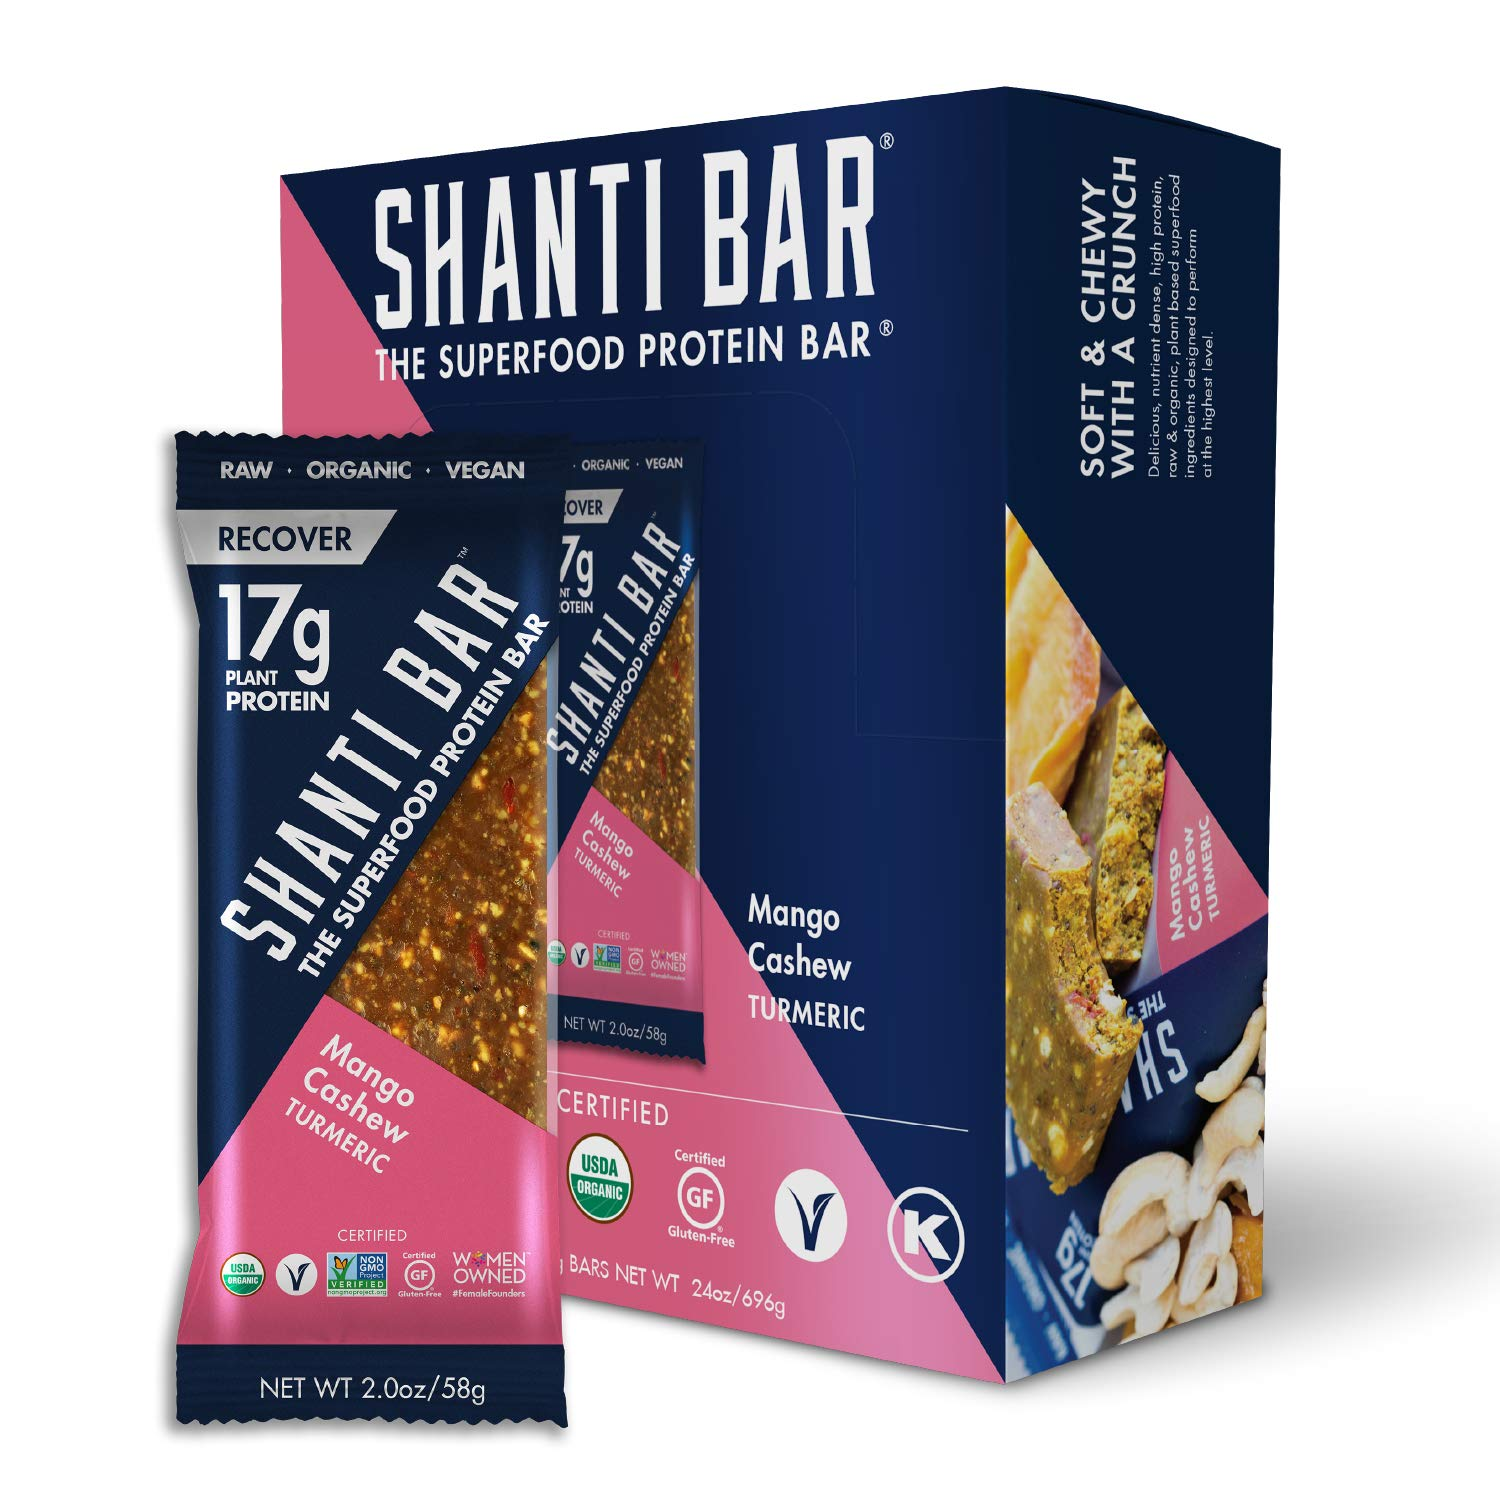 SHANTI BAR | 17G Plant Based Protein | Performance Superfood | Vegan Sport Protein Bar | Paleo, Certified Organic, Low Glycemic, Gluten Free, Raw Healthy Snack with No Refined Sugars | RECOVER Mango Cashew Turmeric| 12 Count, 2 oz Bars